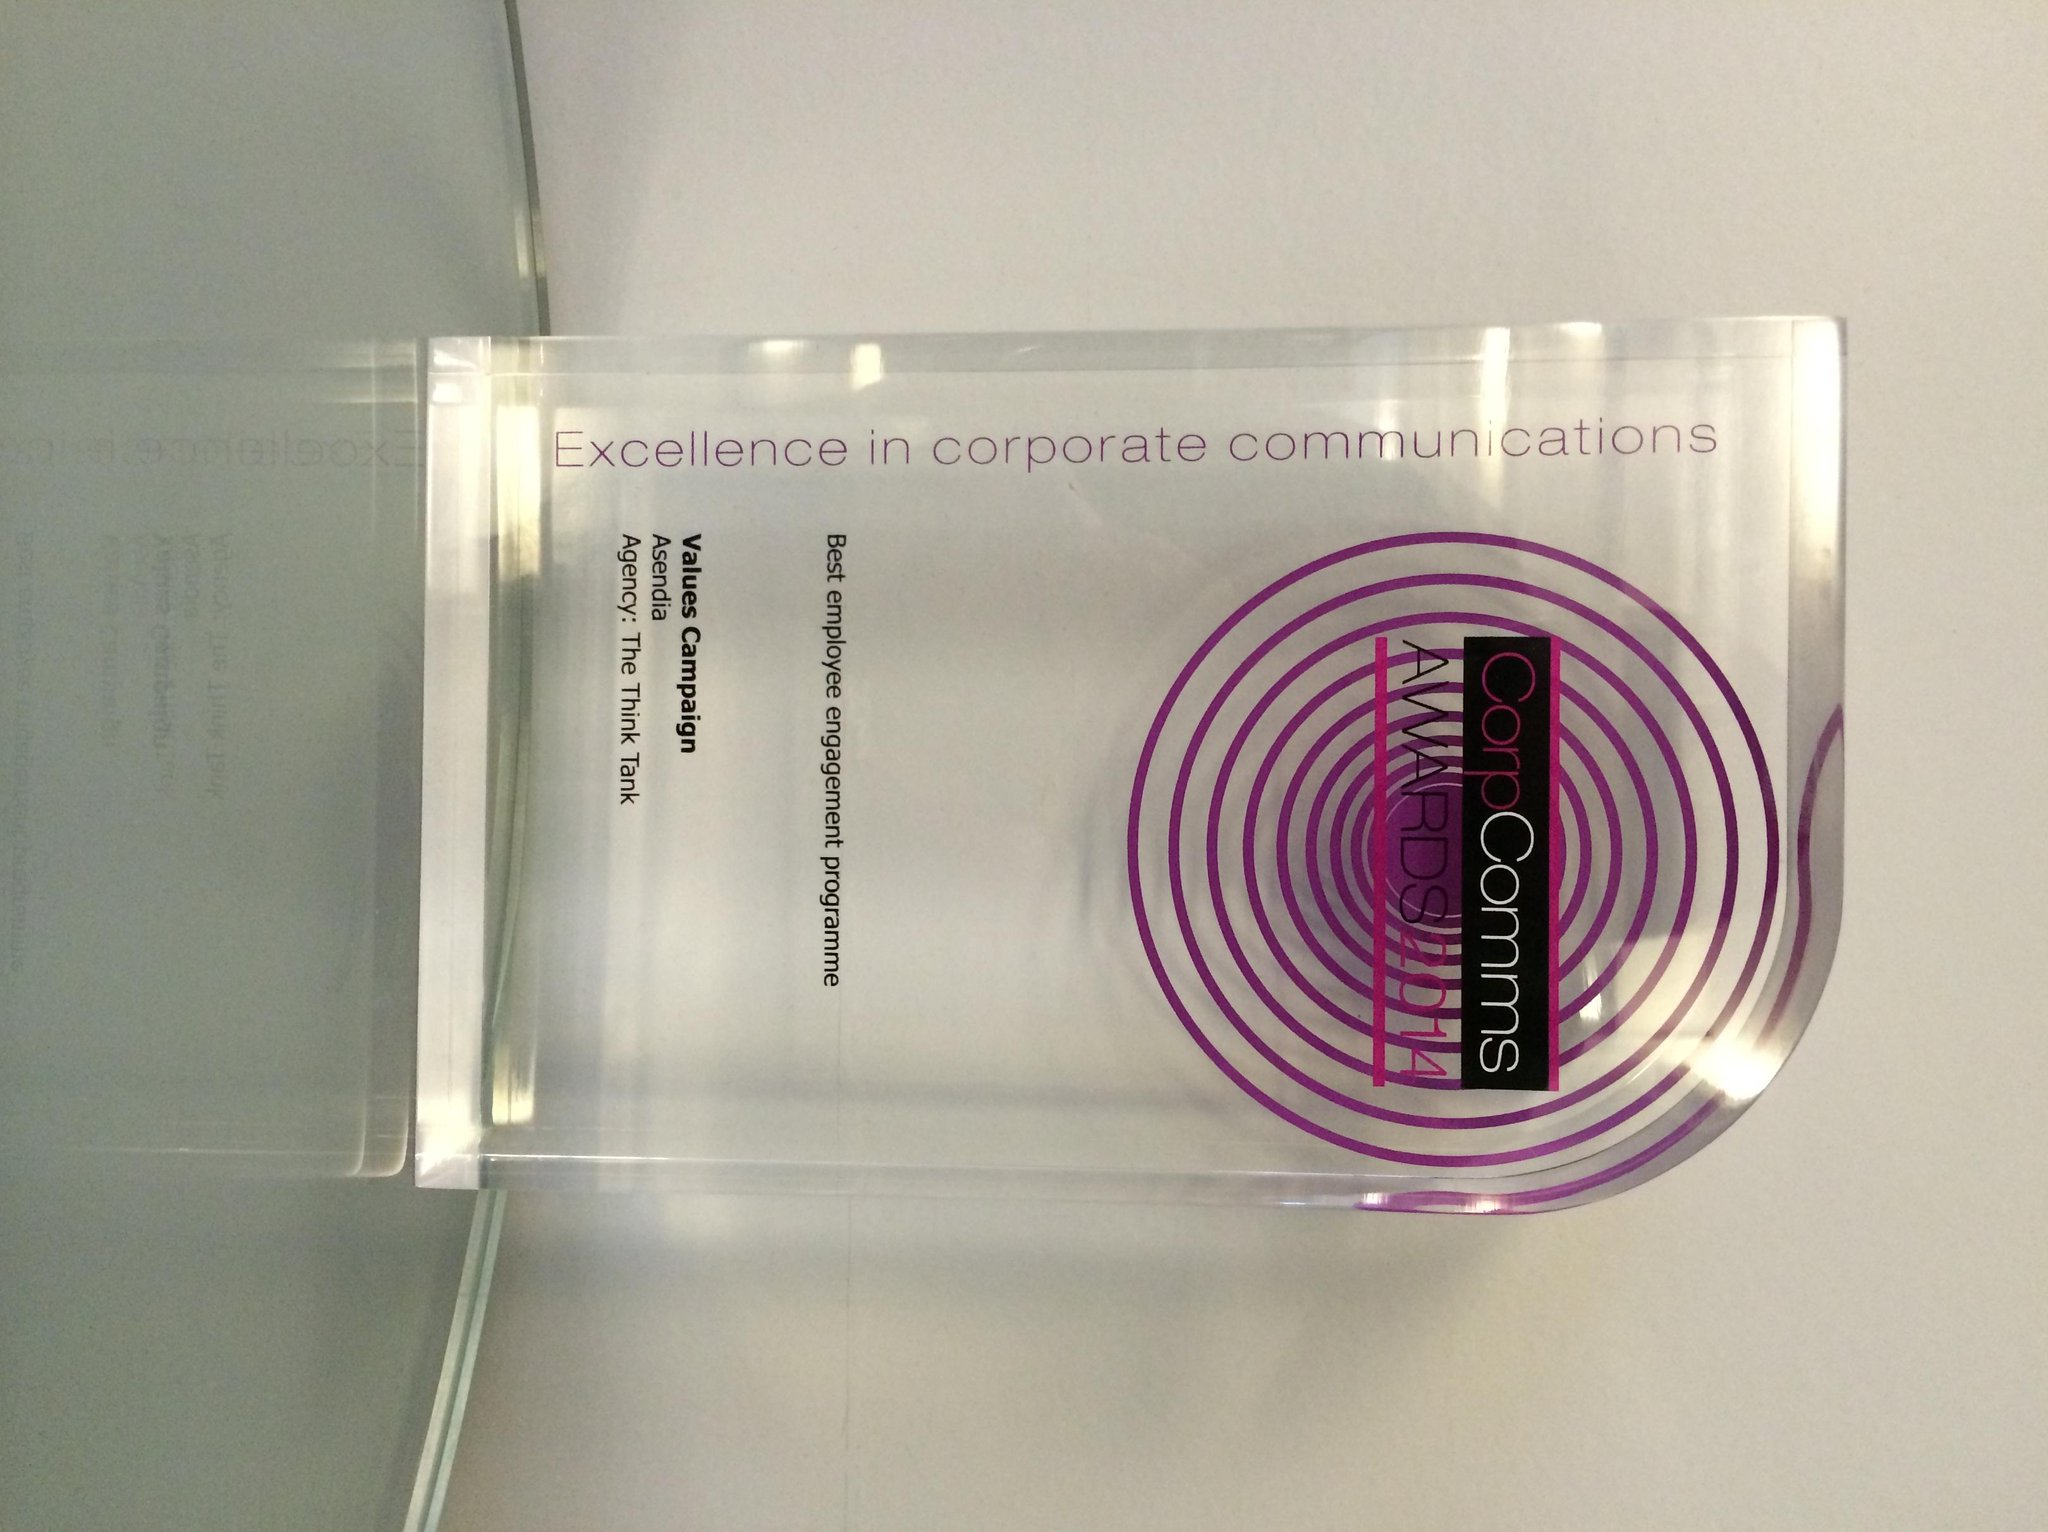 The Think Tank wins at the #CorpComms Awards - read more: http://t.co/AcgnSP0QGu #marketing http://t.co/v2WLjDsEbz